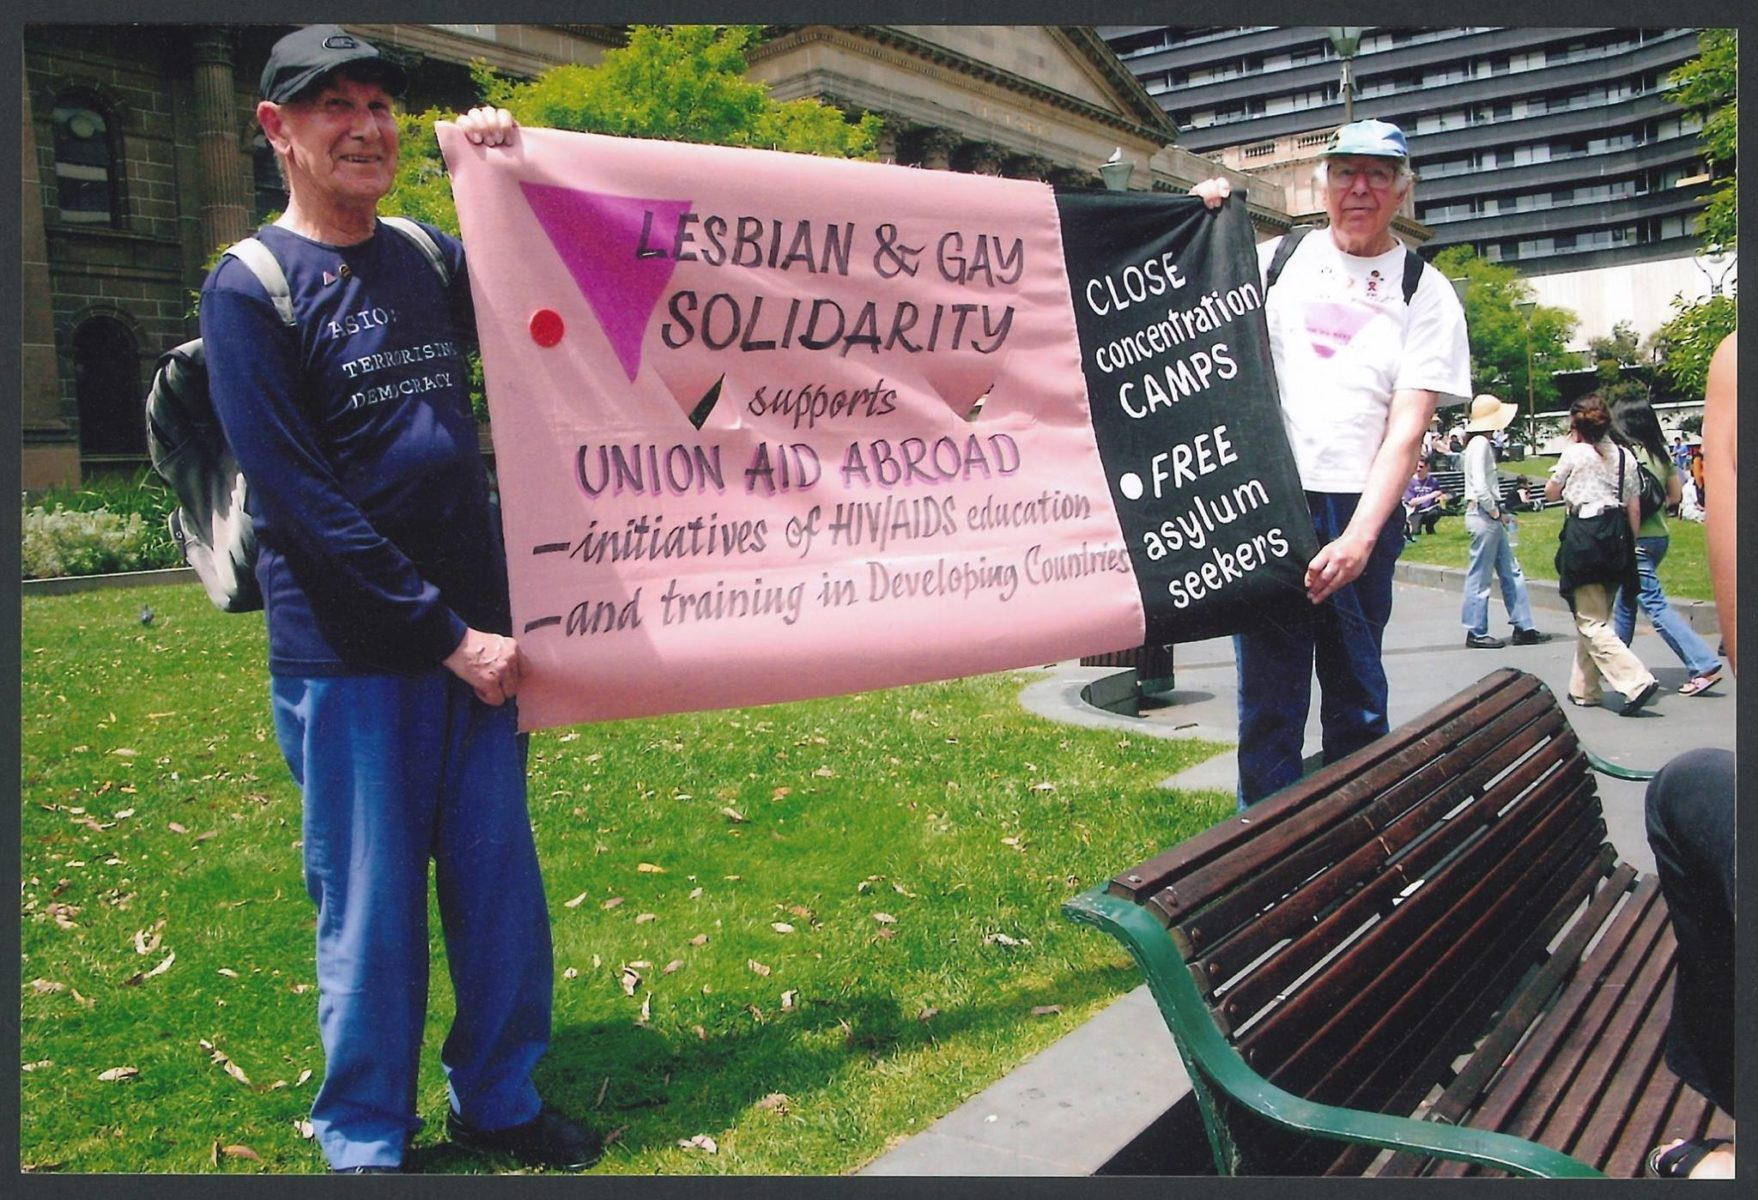 Kendall Lovett and Mannie de Saxe holding the Lesbian and Gay Solidarity banner at an 'Out of Iraq' rally, State Library of Victoria, Melbourne, 2005, (Photo: John Storey)